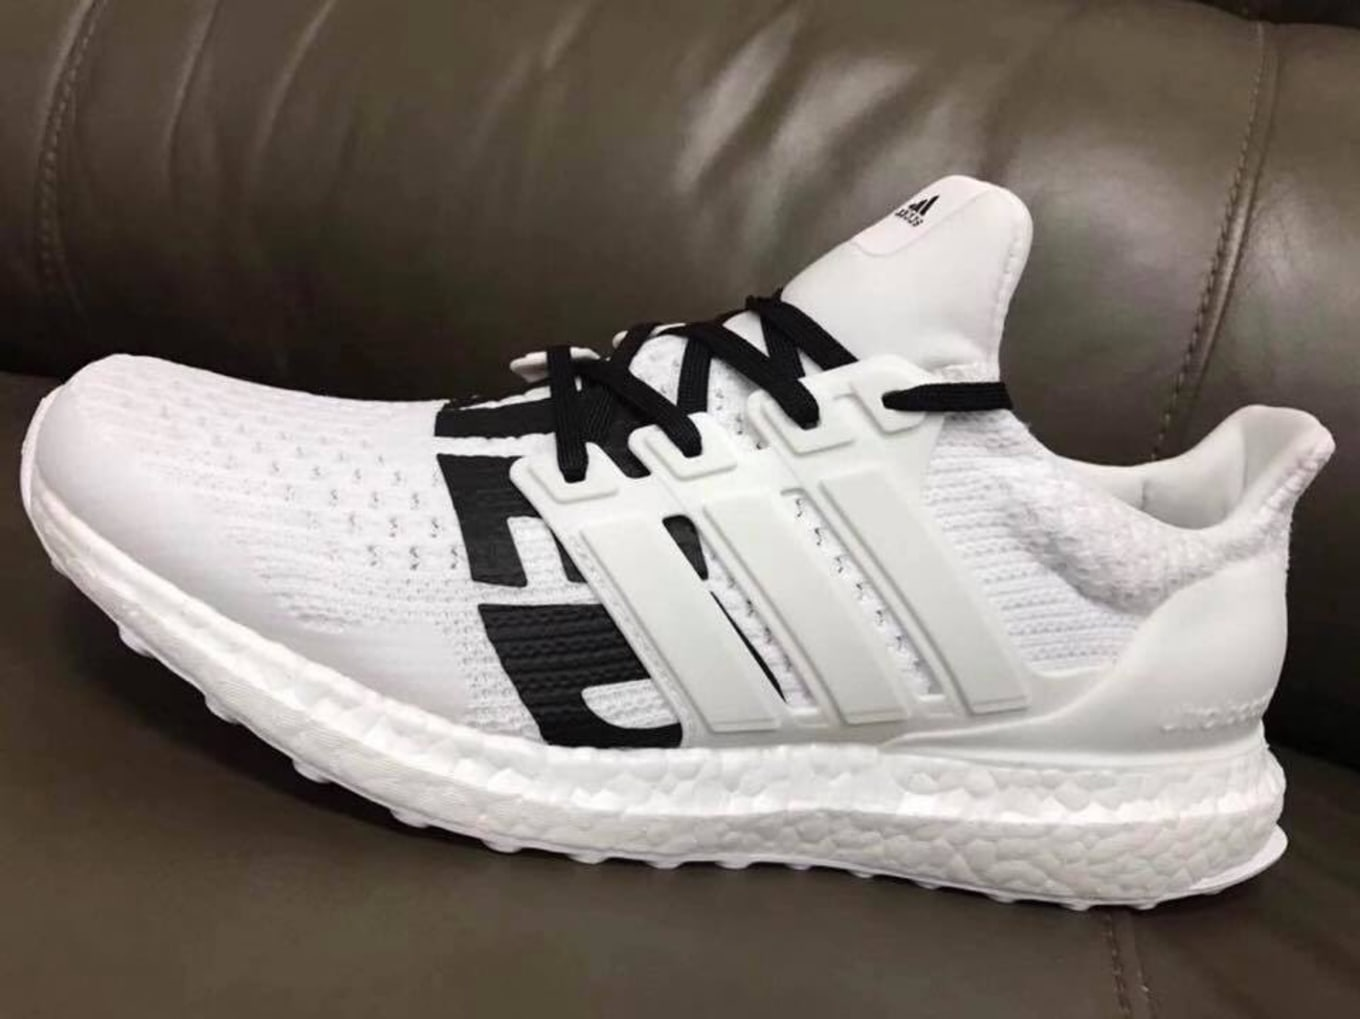 beece7287e5021 A first look at an upcoming Adidas collab from the Consortium retailer.